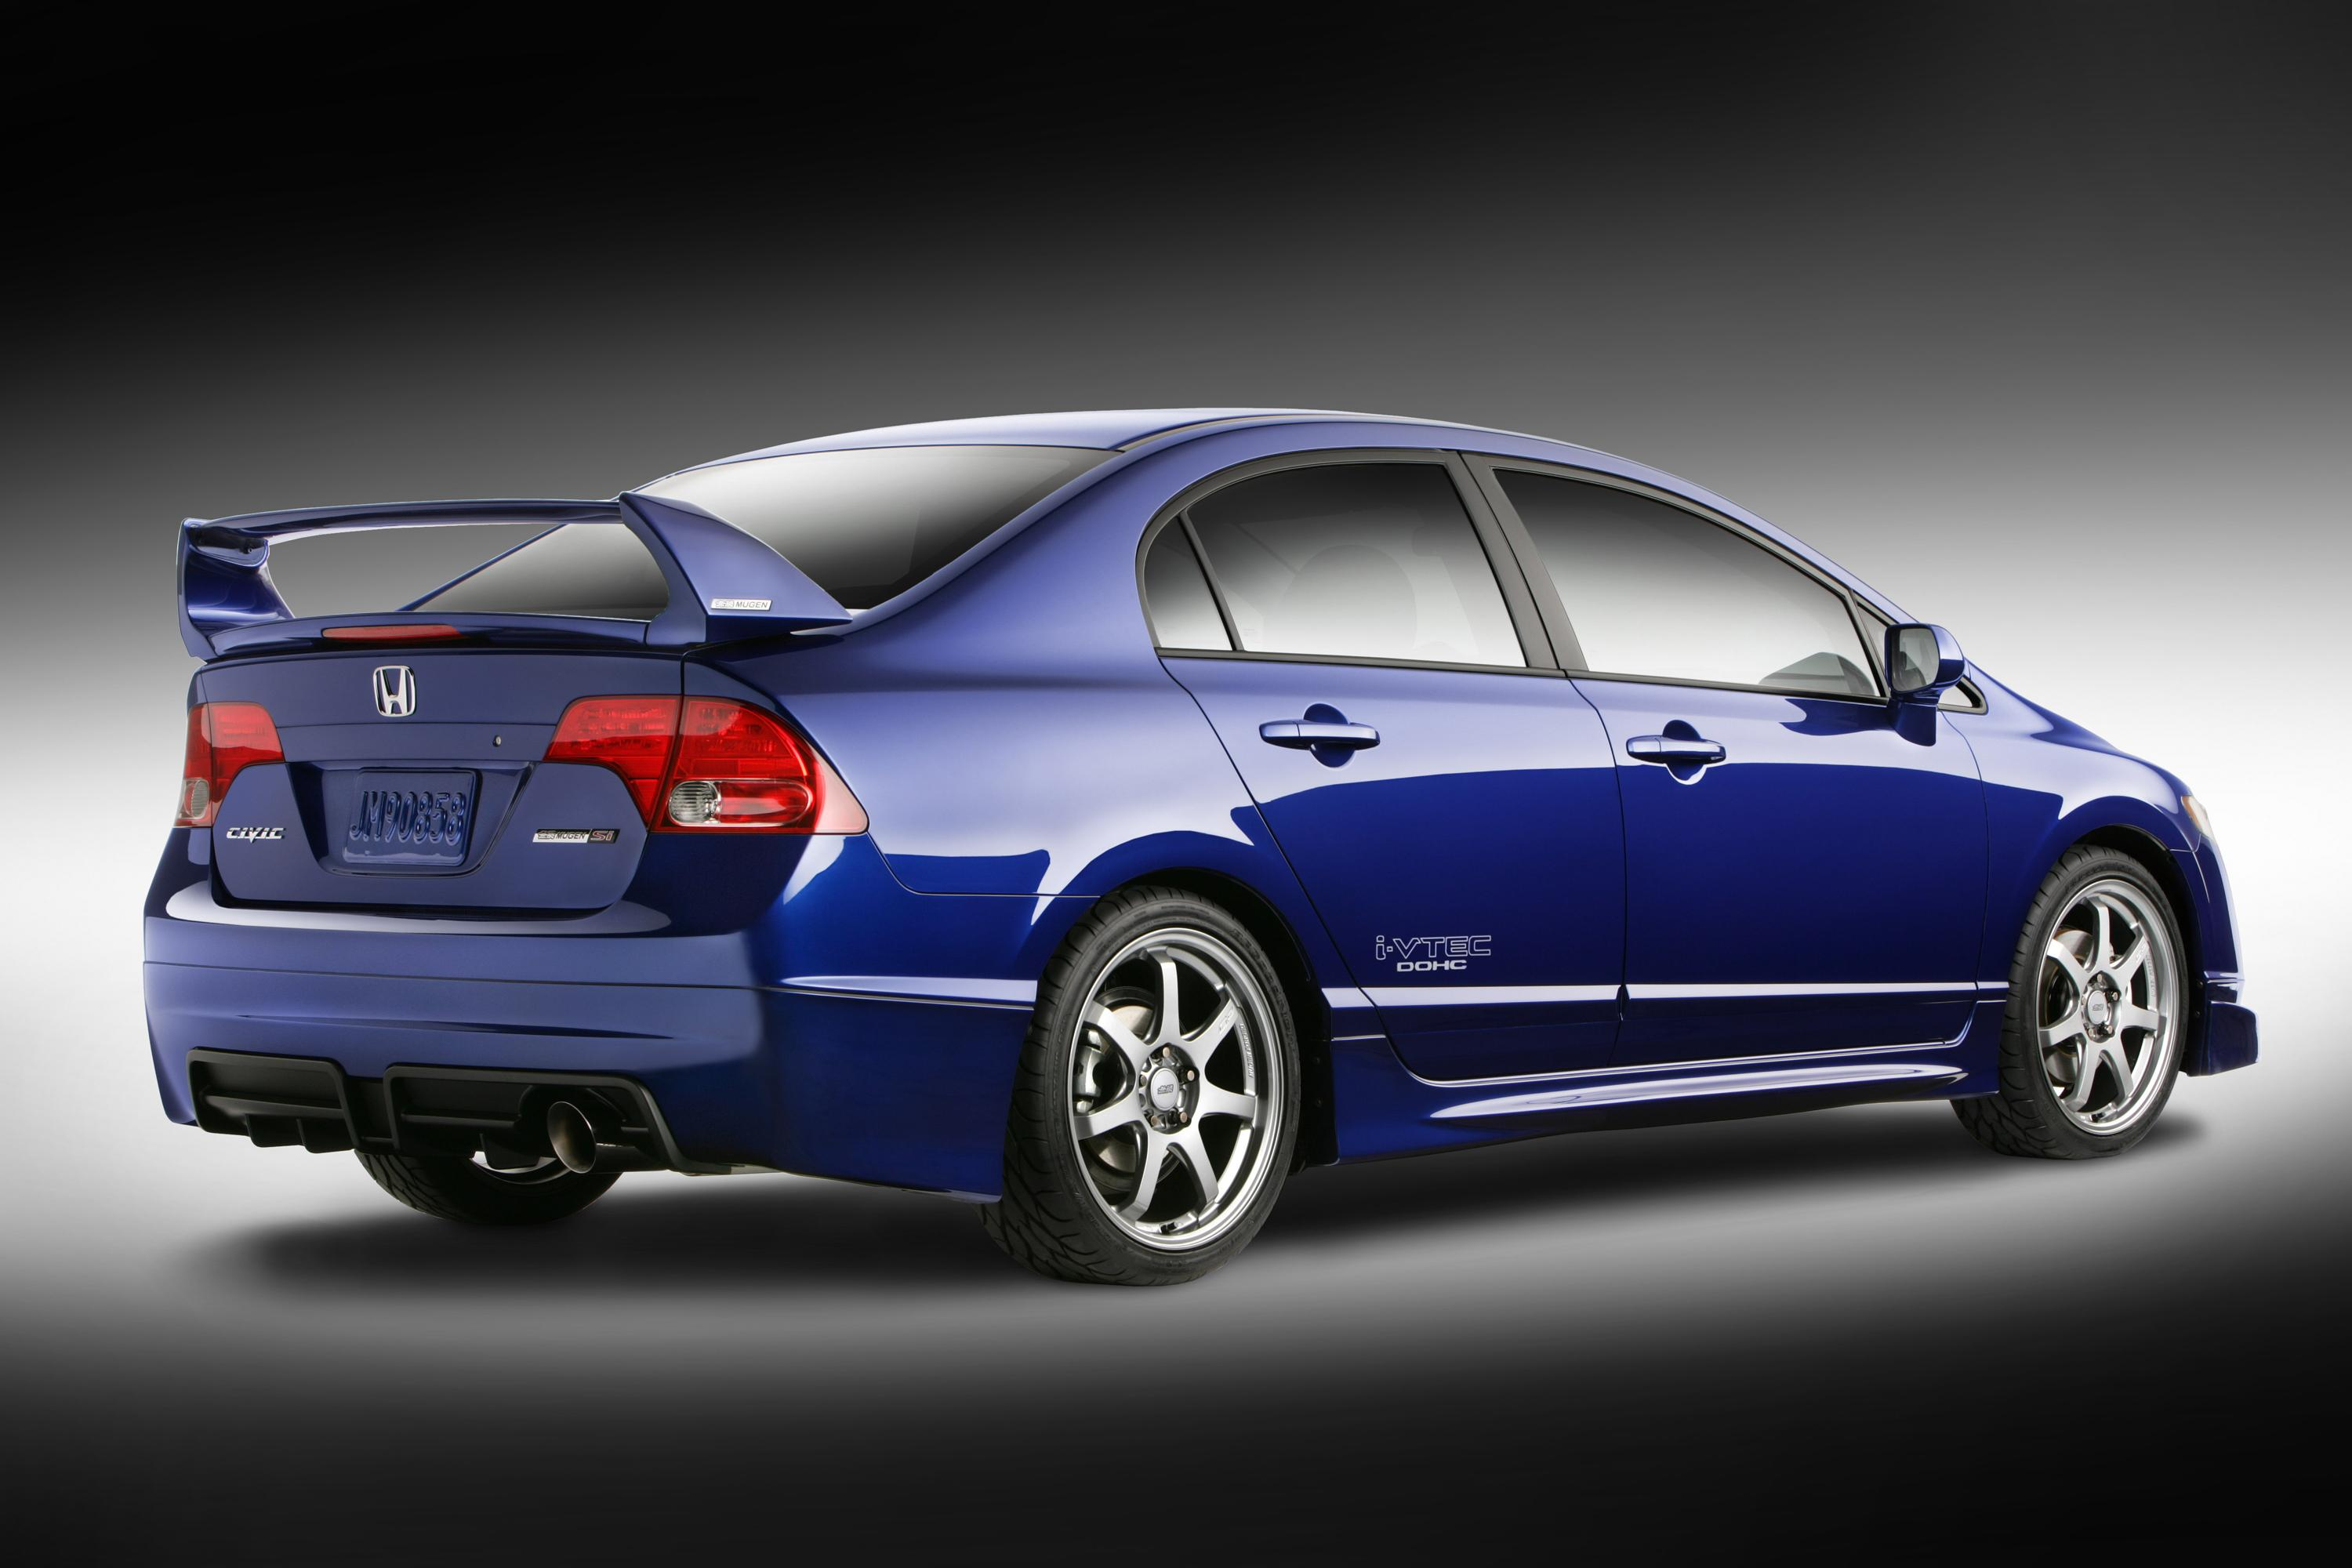 Honda Civic Mugen SI Sedan - Picture 5399